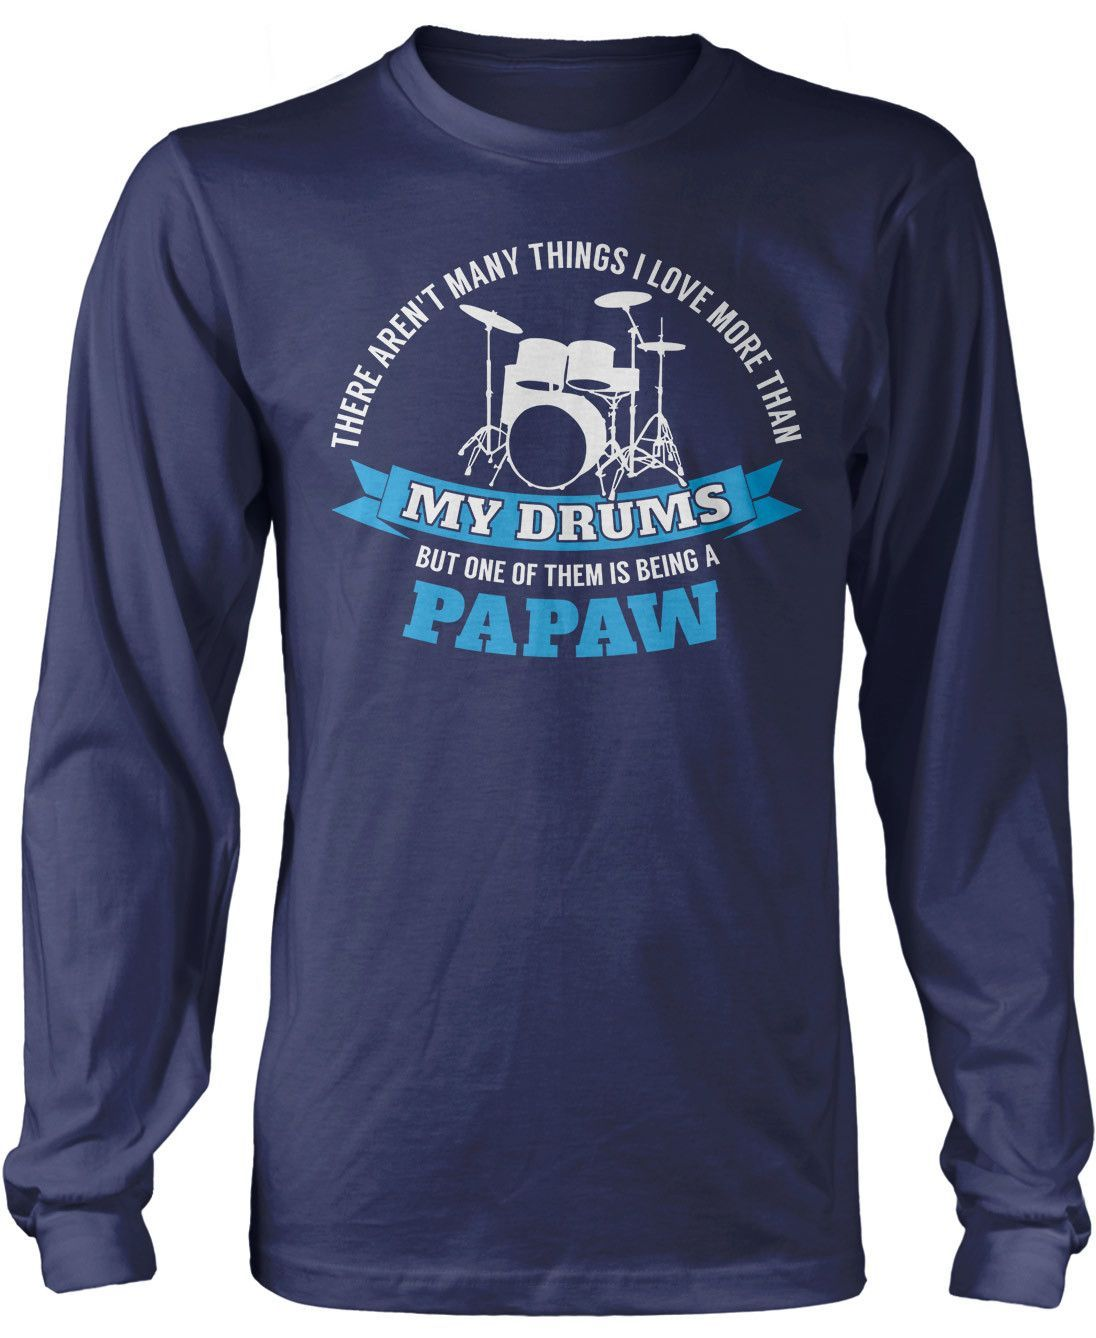 This Papaw Loves His Drums